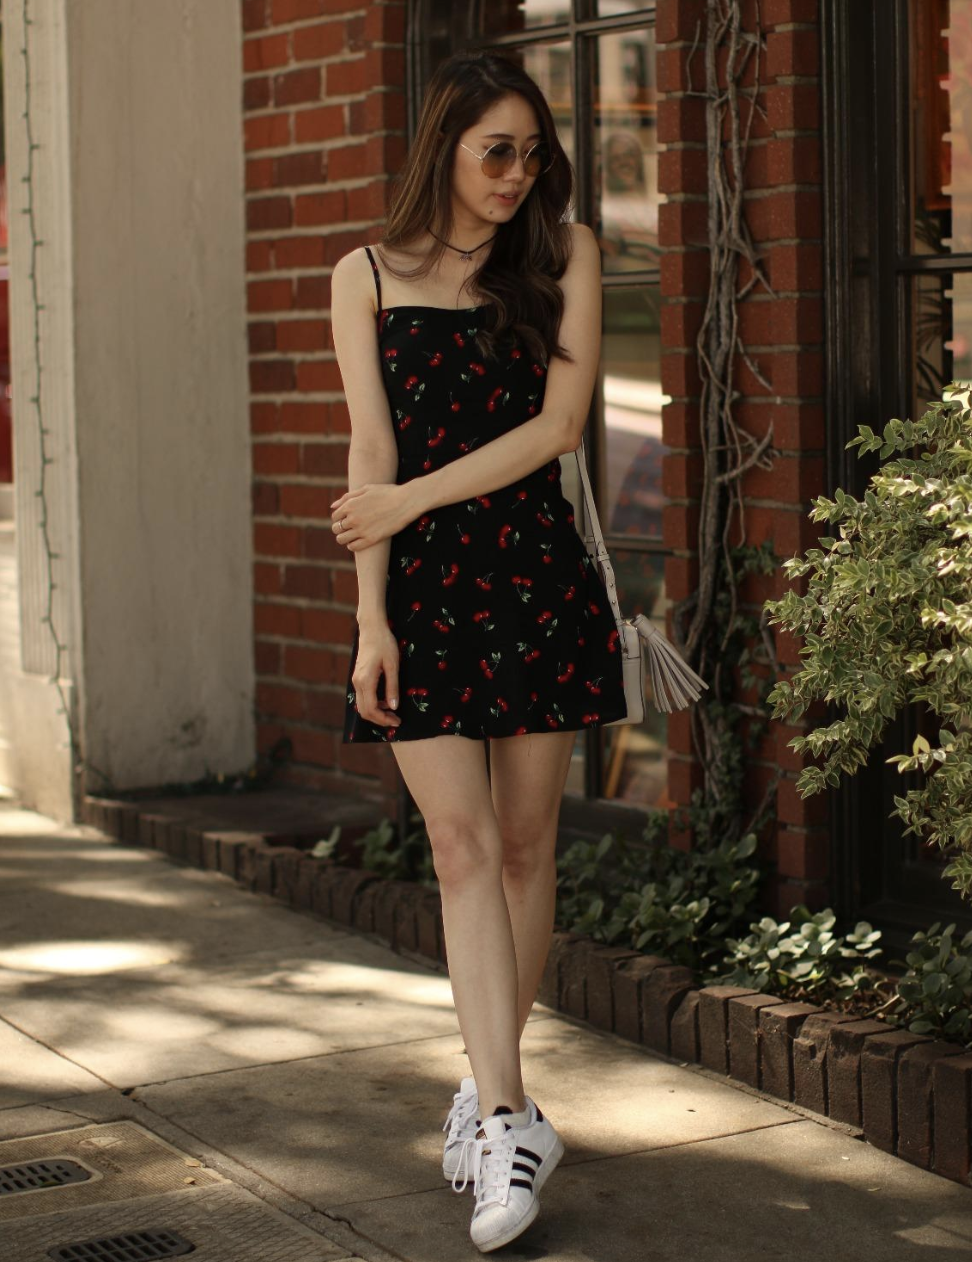 reviewer wearing black mini dress with cherry print